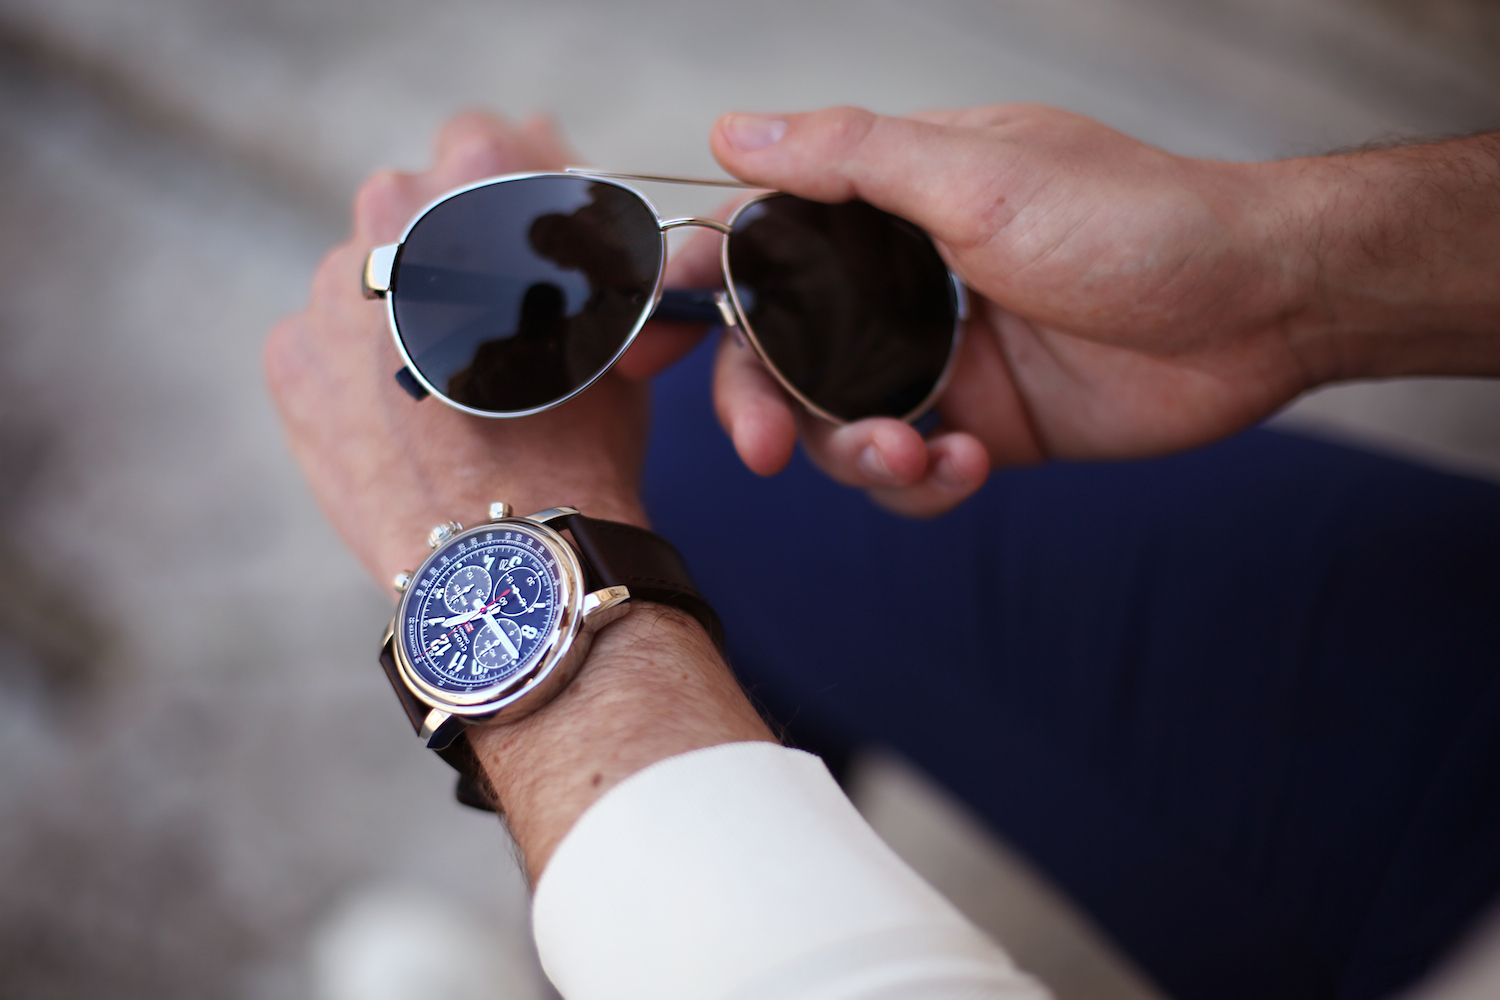 filippo-cirulli_menswear-influencer_chopard-mille-miglia-watch_tom-ford-shirt